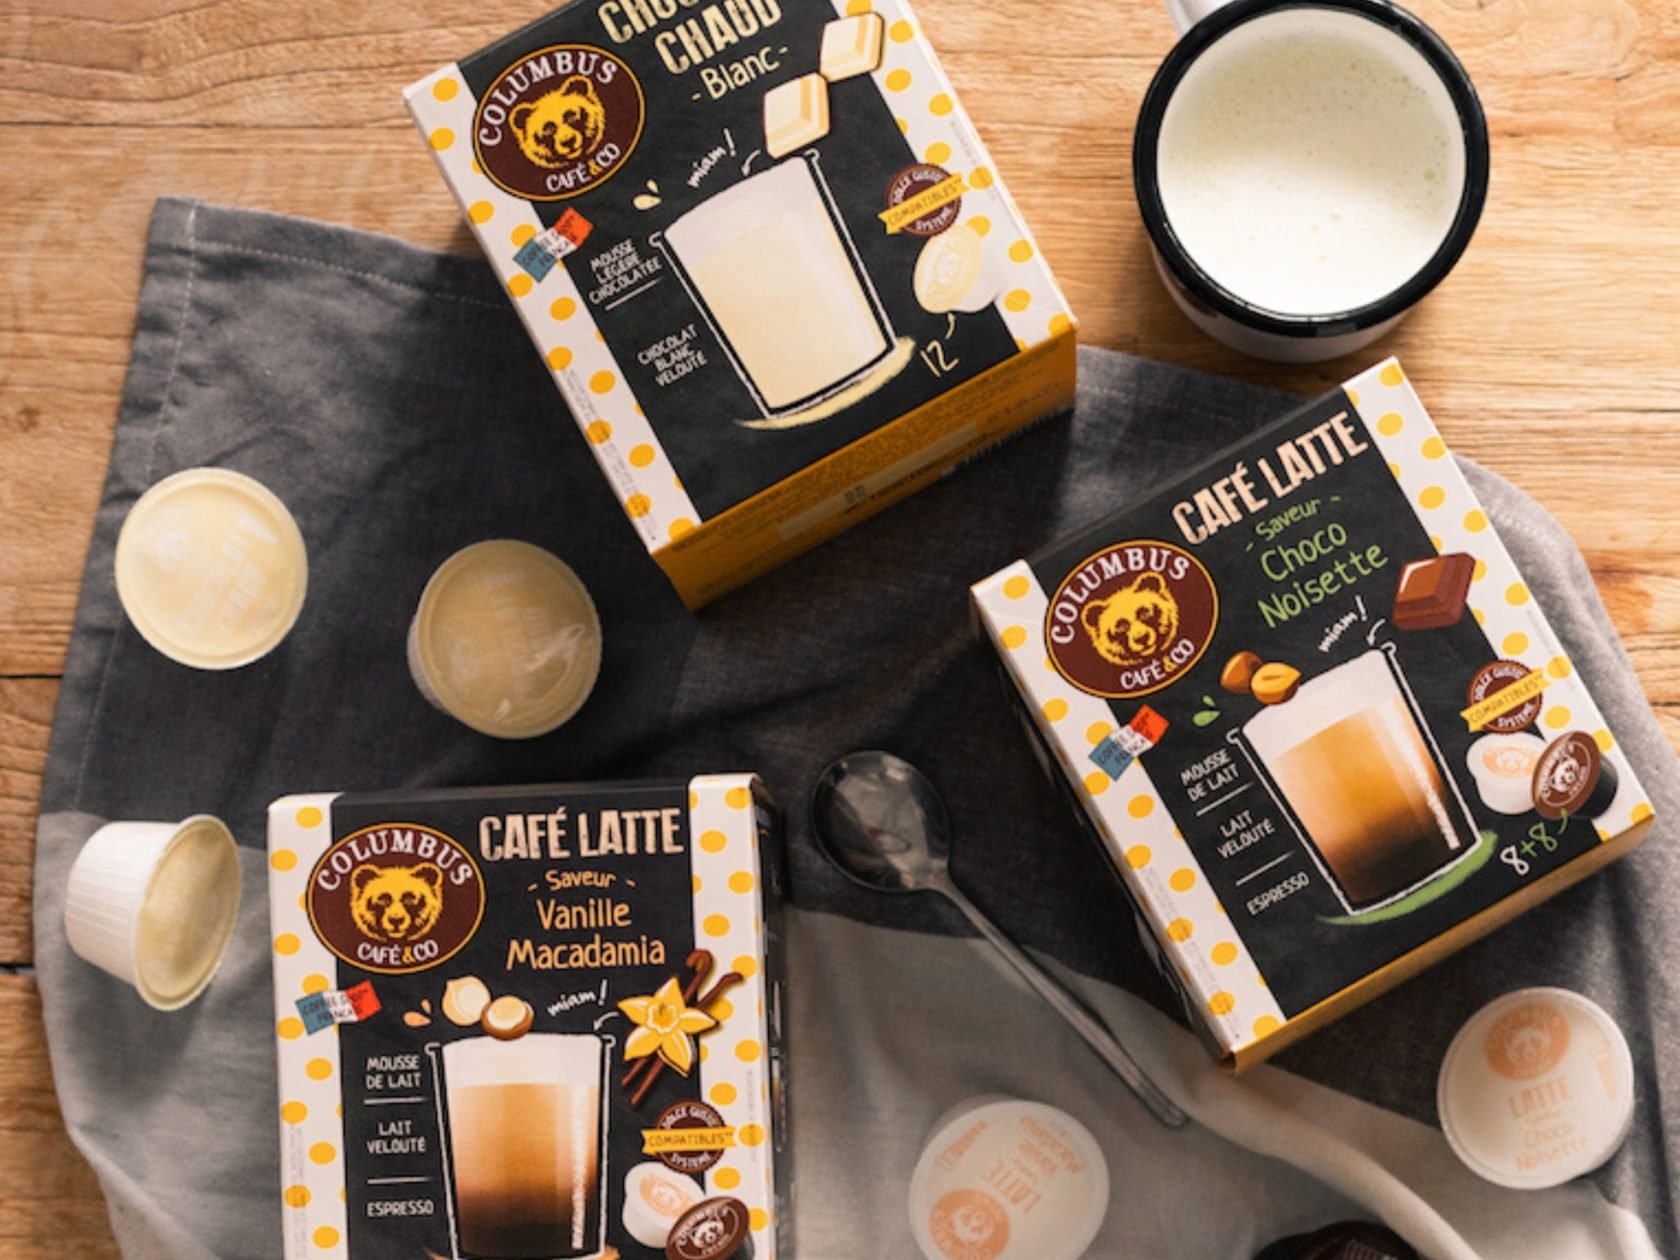 Raspberry White chocolate flavour Café Latte Dolce Gusto® x 16